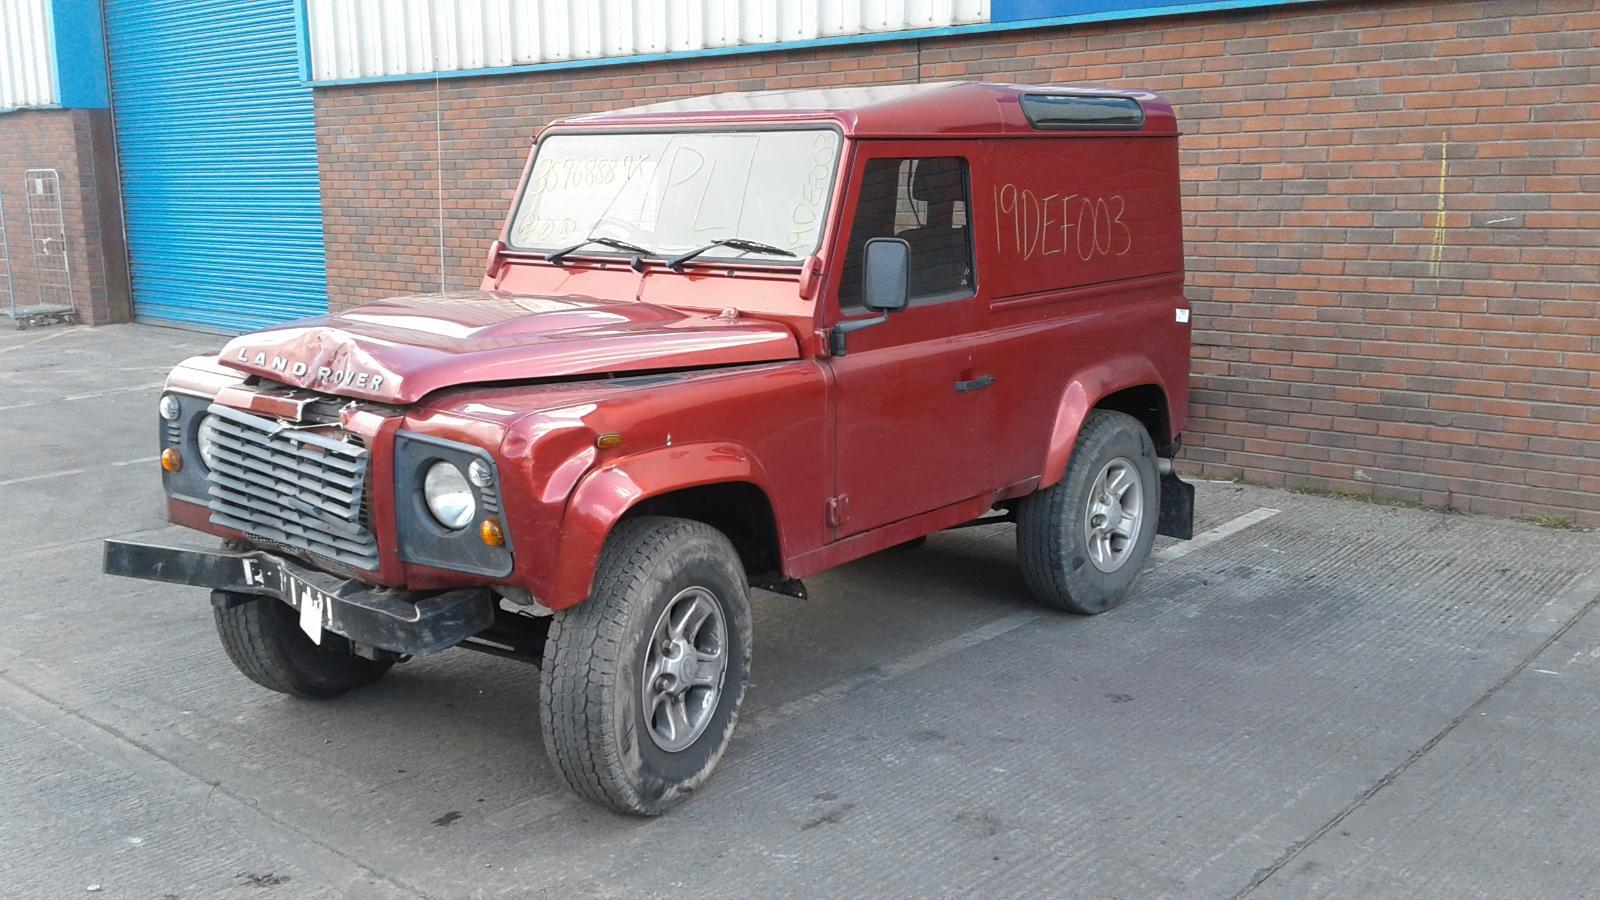 2007 LAND ROVER DEFENDER Image